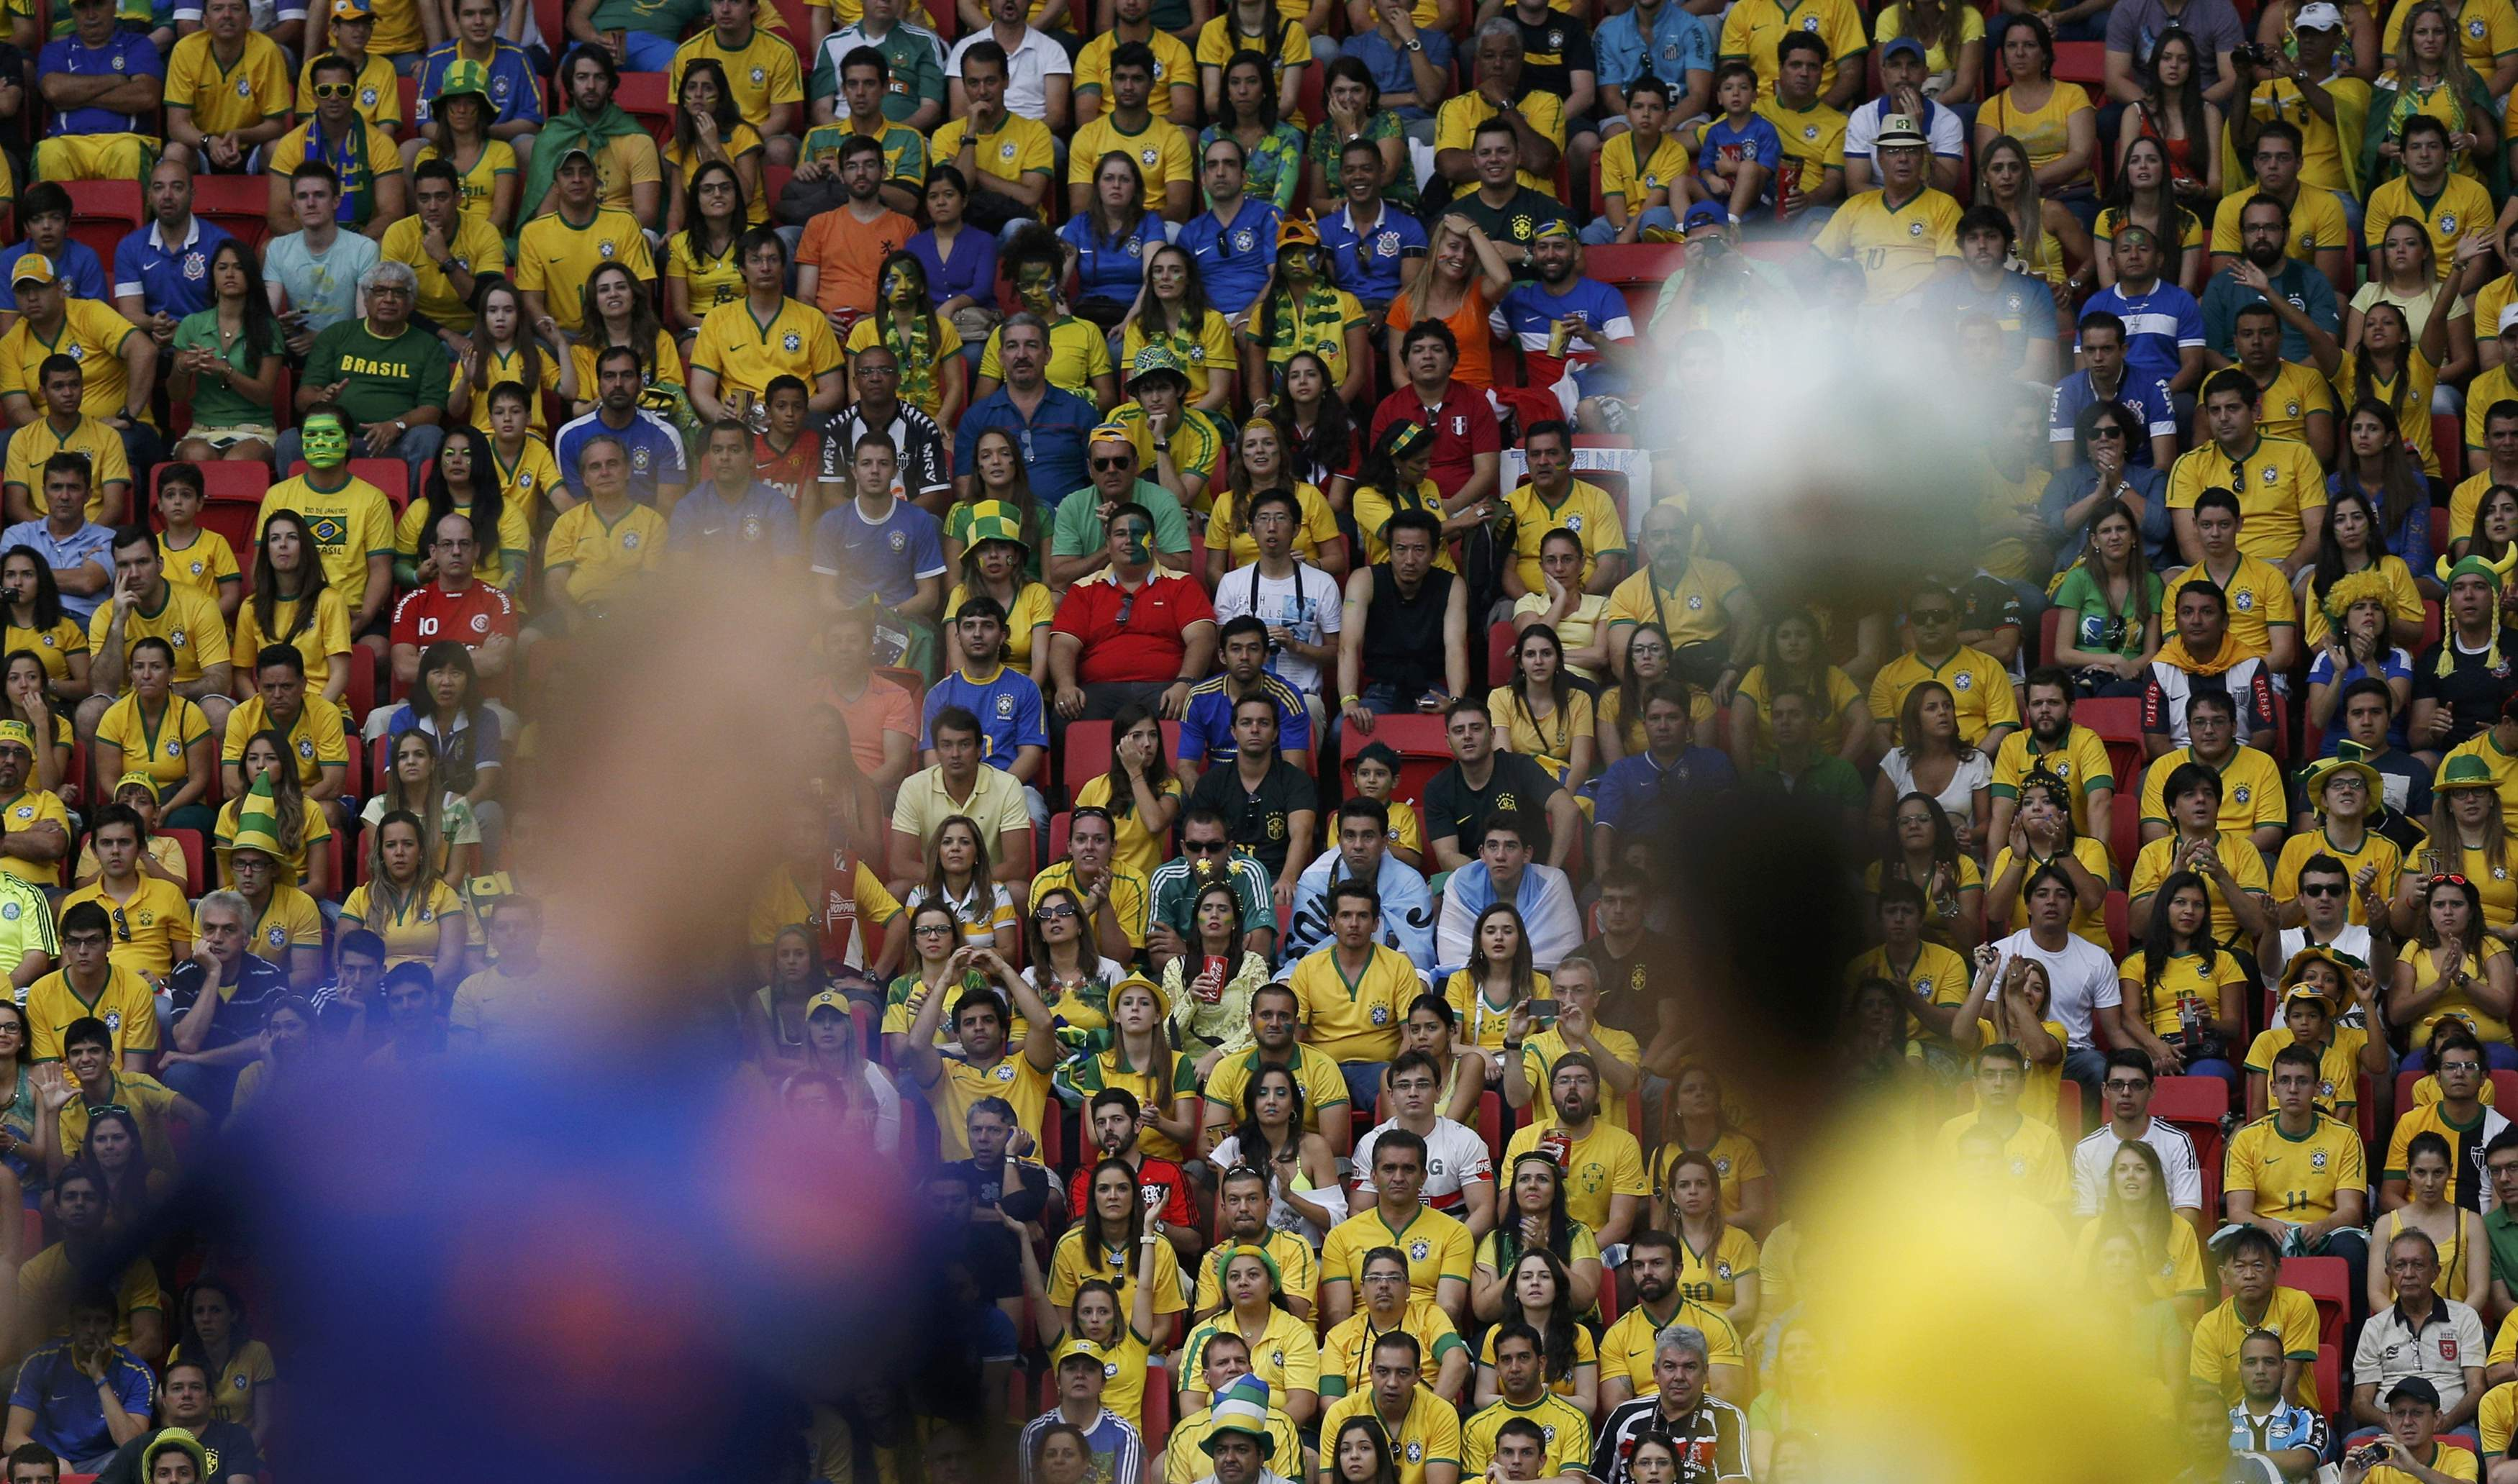 Fans watch as Dirk Kuyt of the Netherlands (L) fights for the ball with Brazil's Oscar during their 2014 World Cup third-place playoff at the Brasilia national stadium in Brasilia July 12, 2014. REUTERS/Ueslei Marcelino (BRAZIL  - Tags: SOCCER SPORT WORLD CUP TPX IMAGES OF THE DAY)        TOPCUP - RTR3YBND